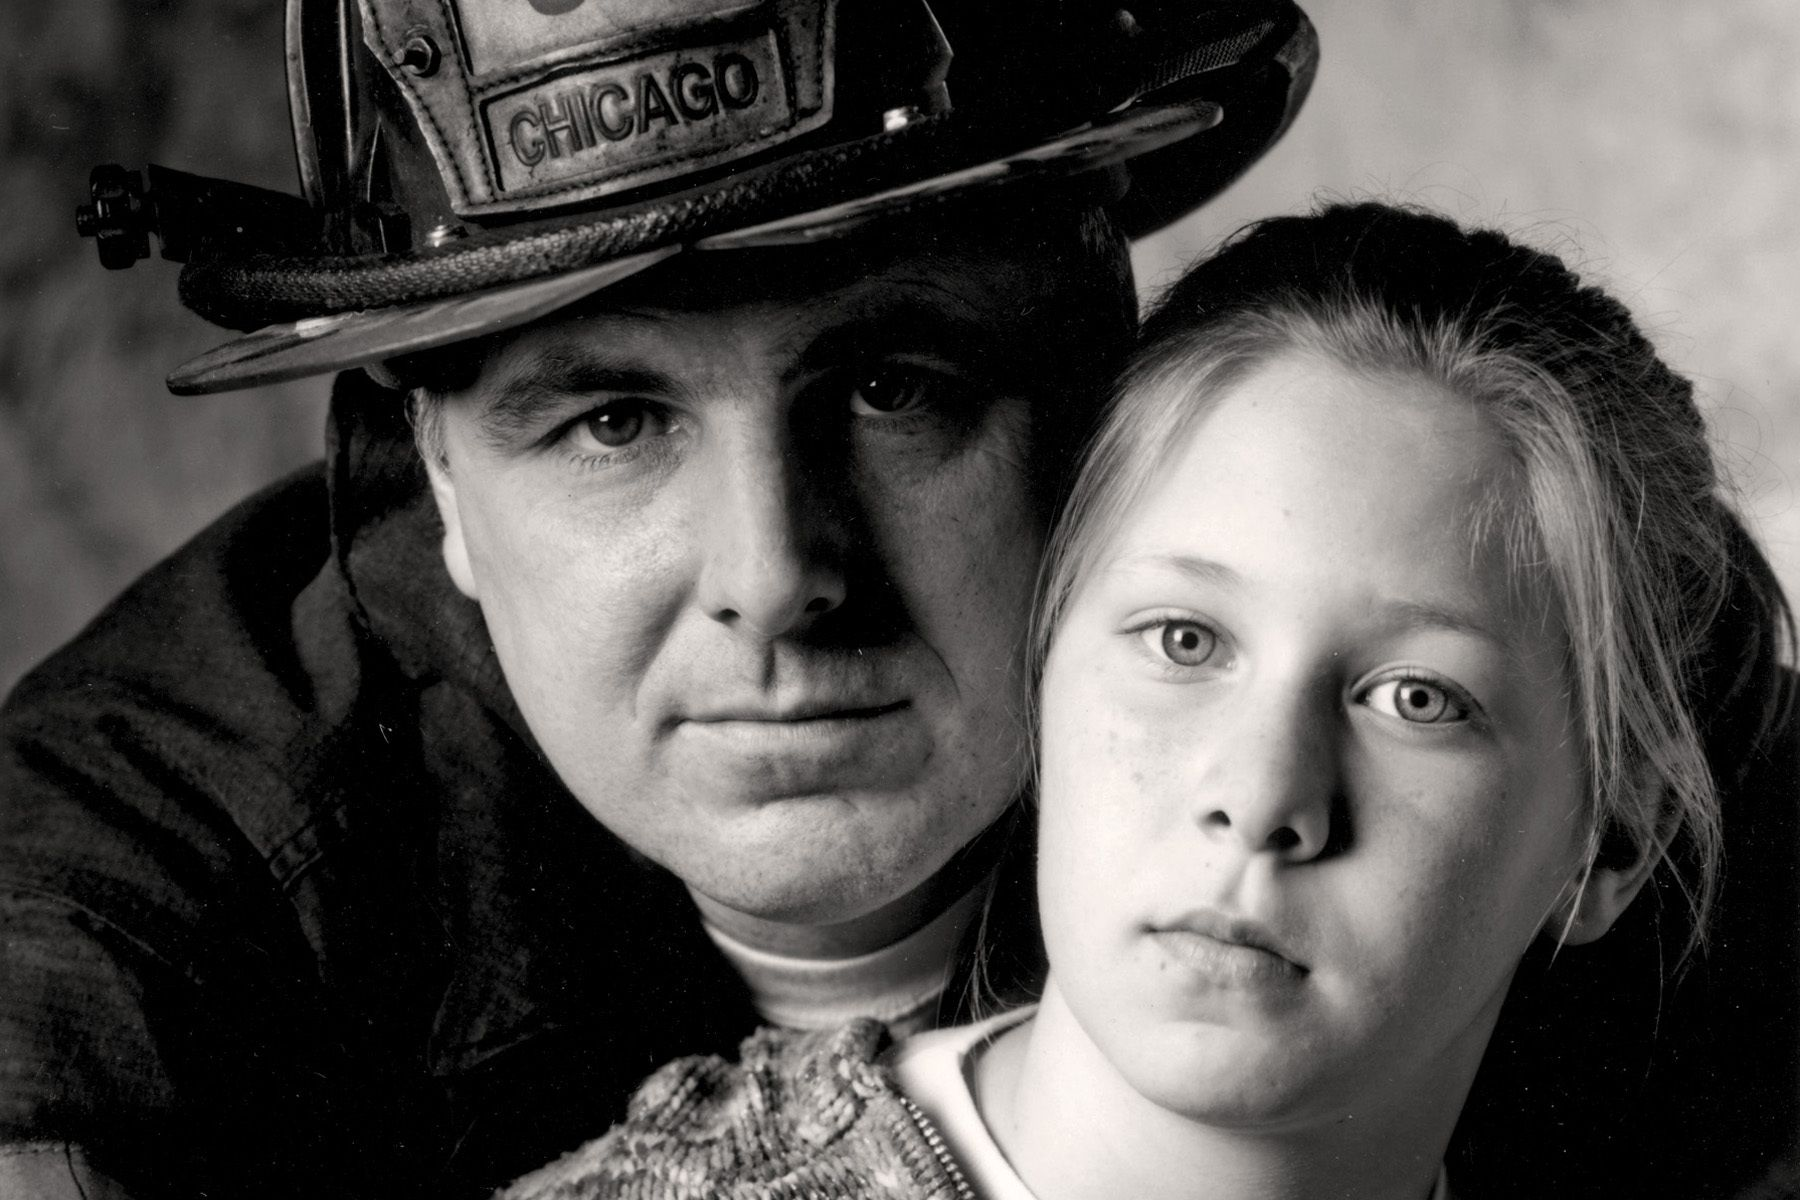 Red 35Chicago Fire Department Captain Jim Purl with his daughter